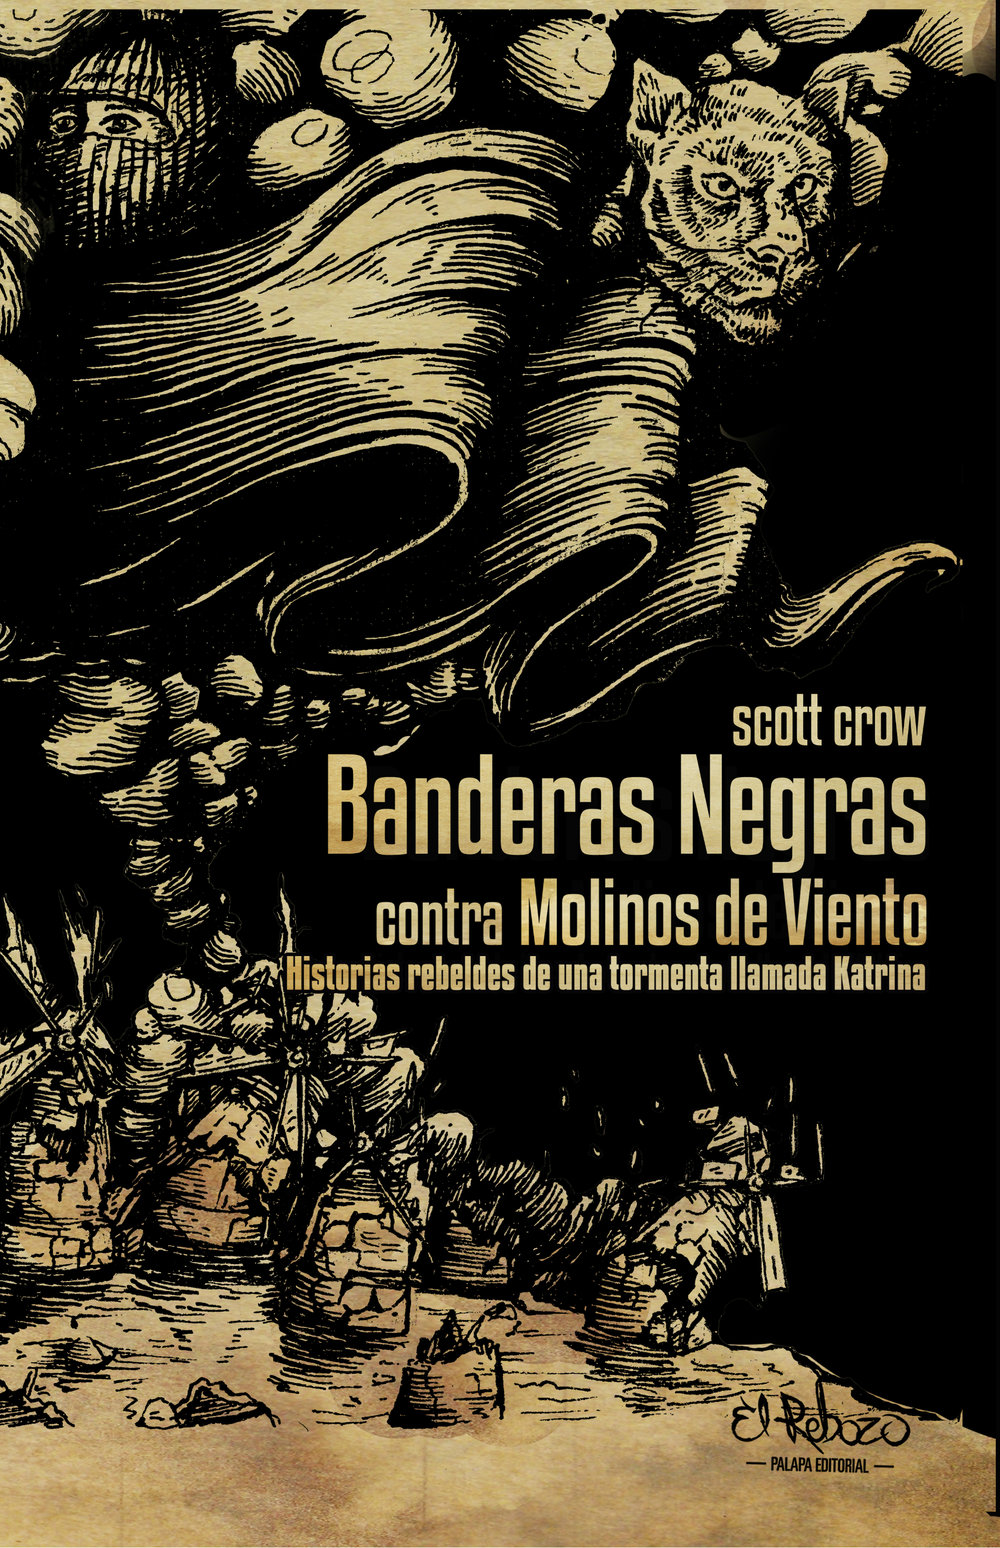 Black Flags banderas negras tapa Spanish FRONT FINAL.jpg